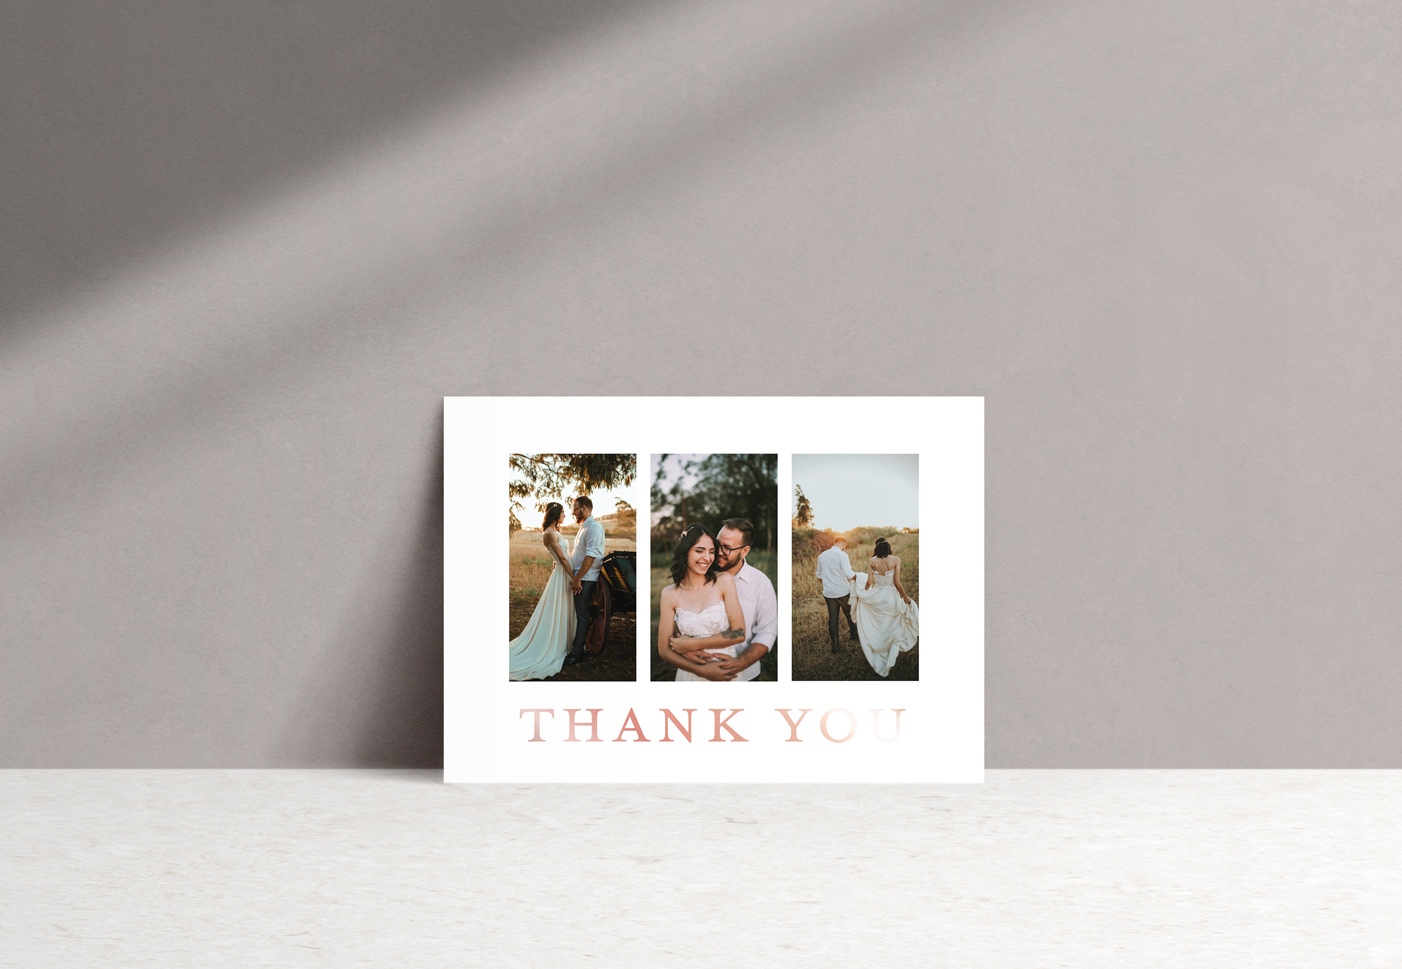 Ophelia Thank You Card